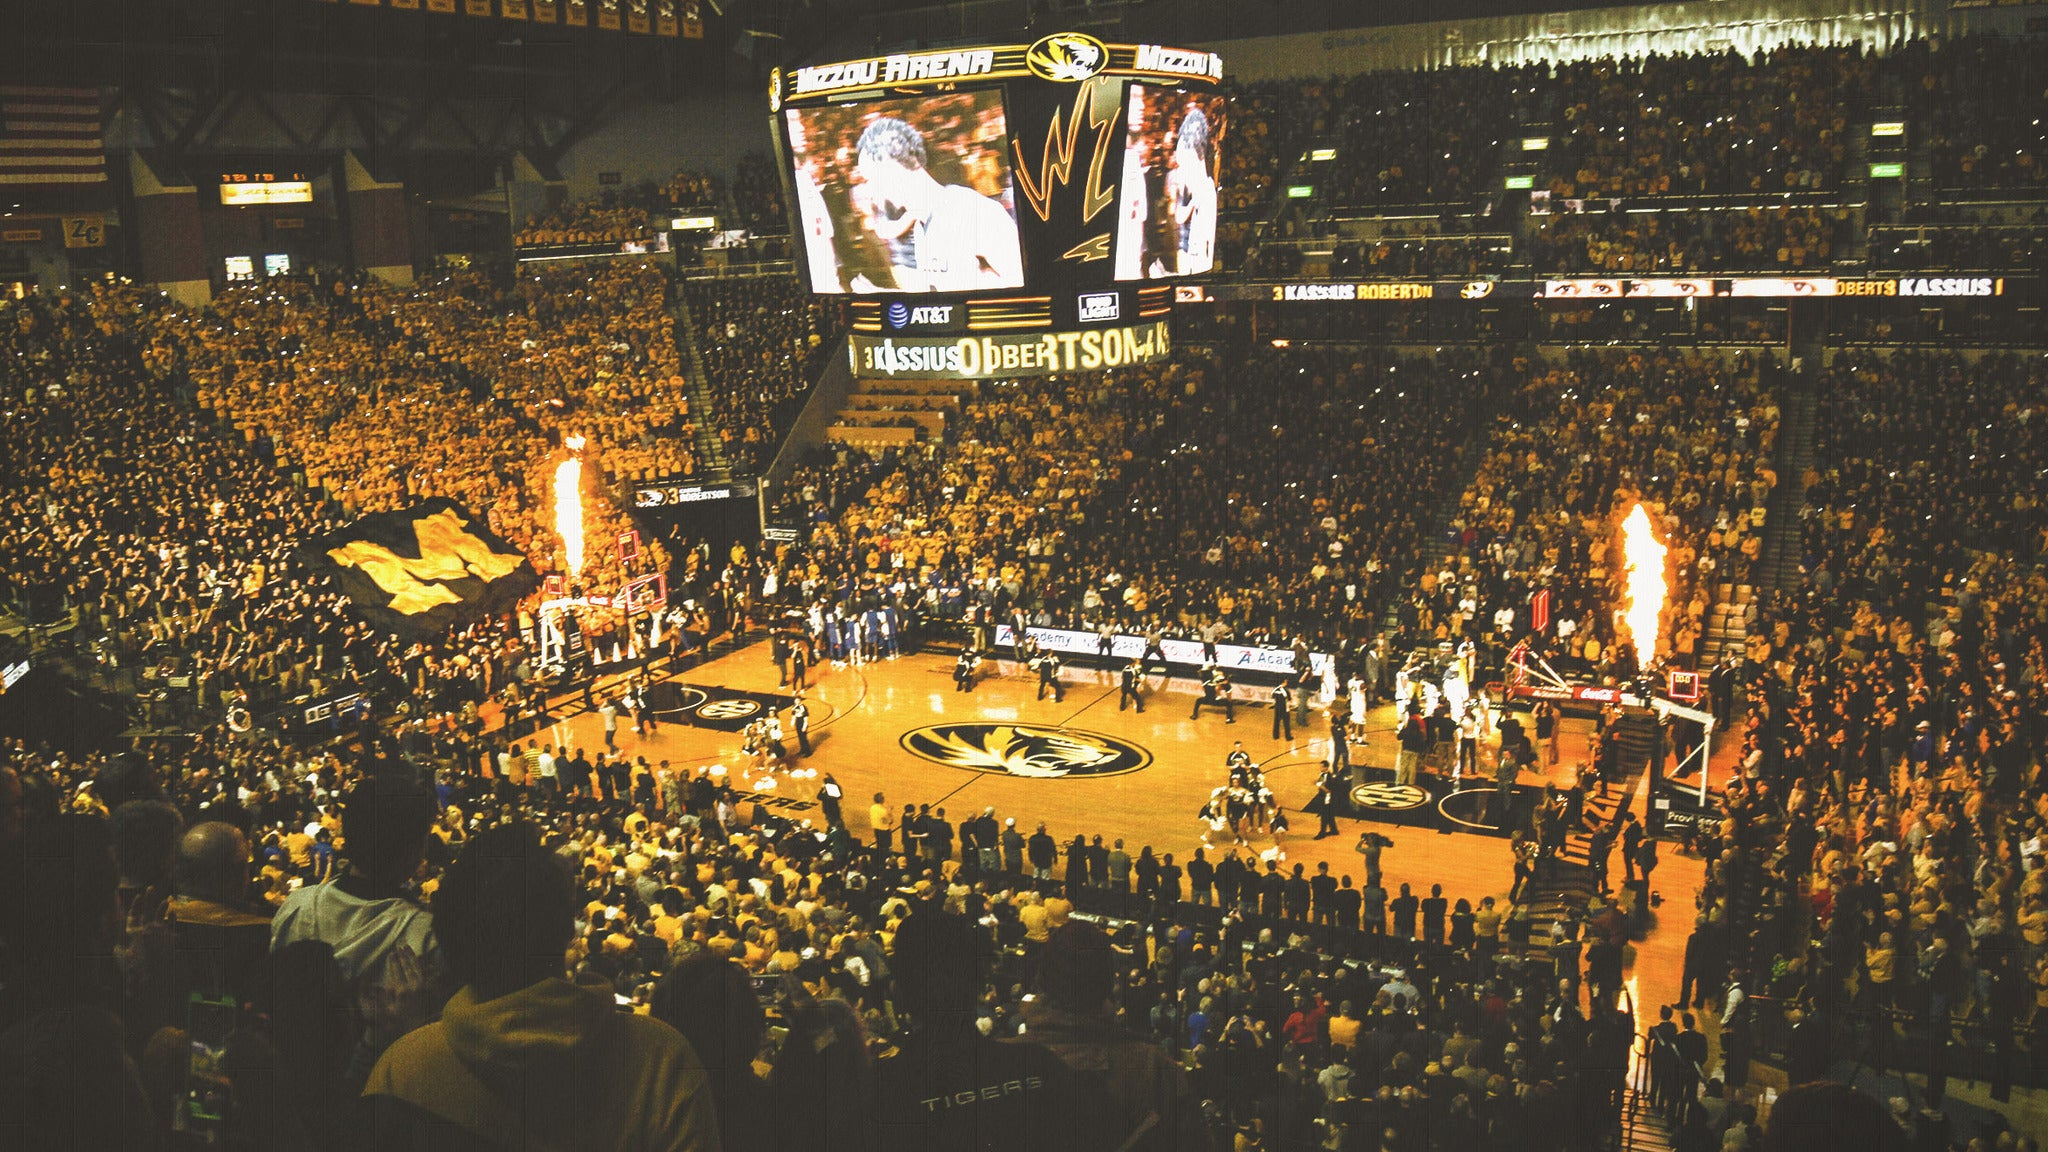 Mizzou Tigers Men's Basketball vs. Alabama Crimson Tide